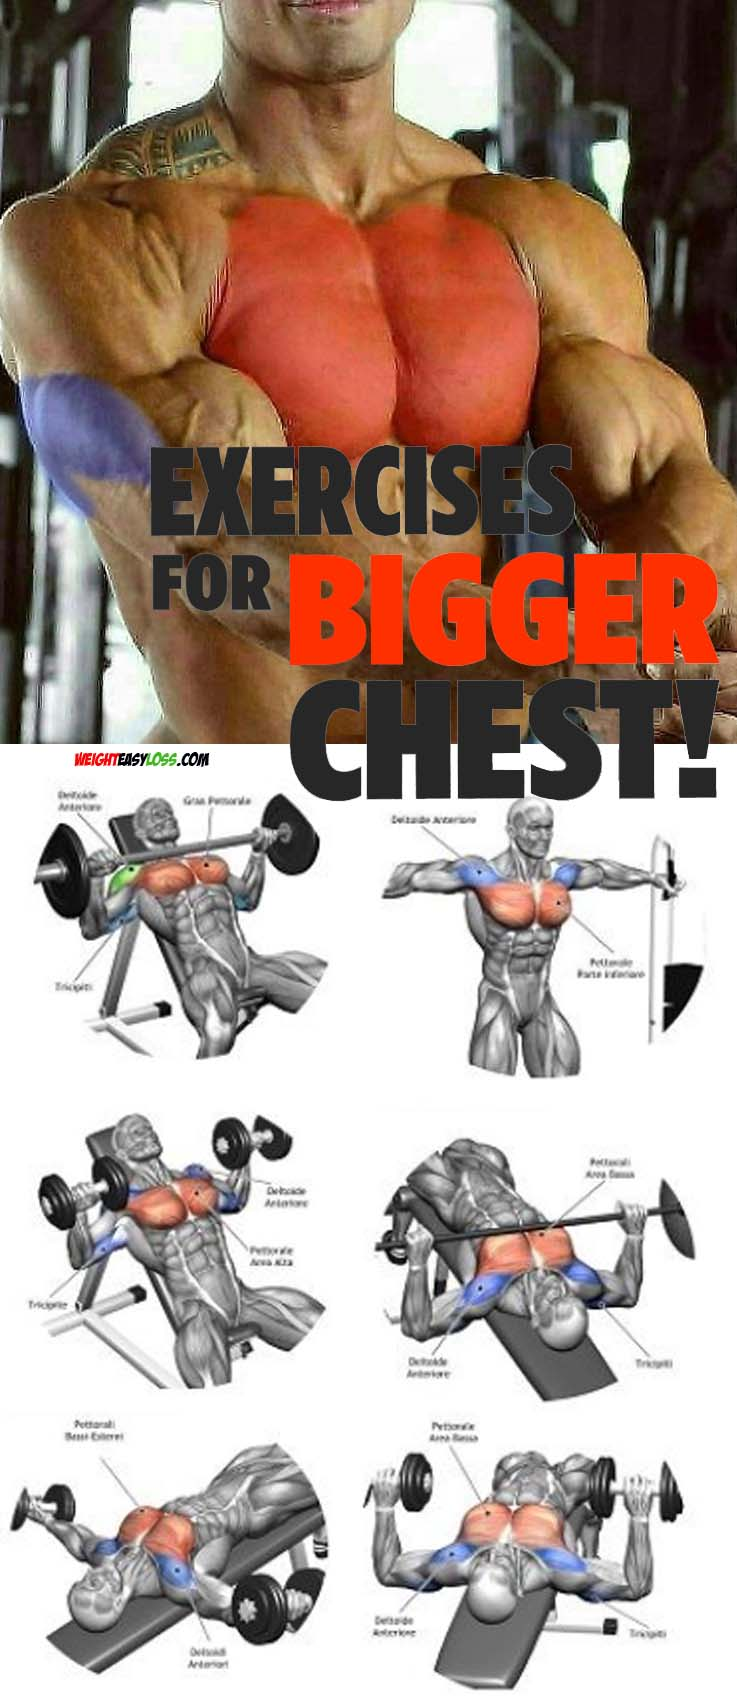 Exercises For Bigger Chest